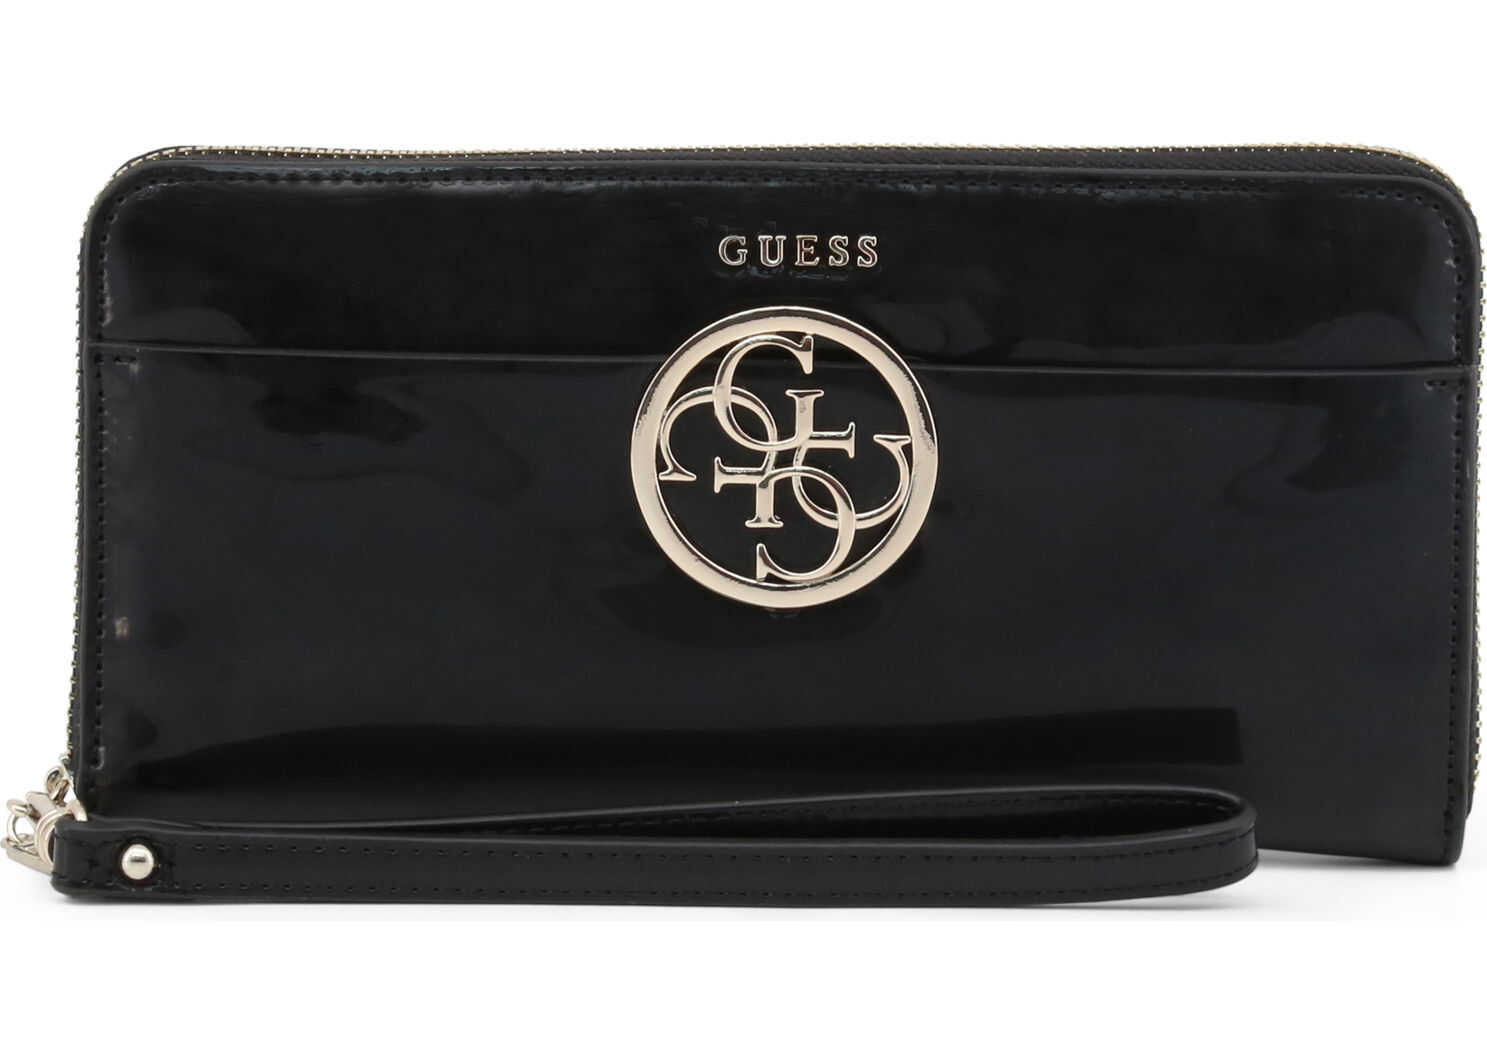 GUESS Swph66_91460 BLACK